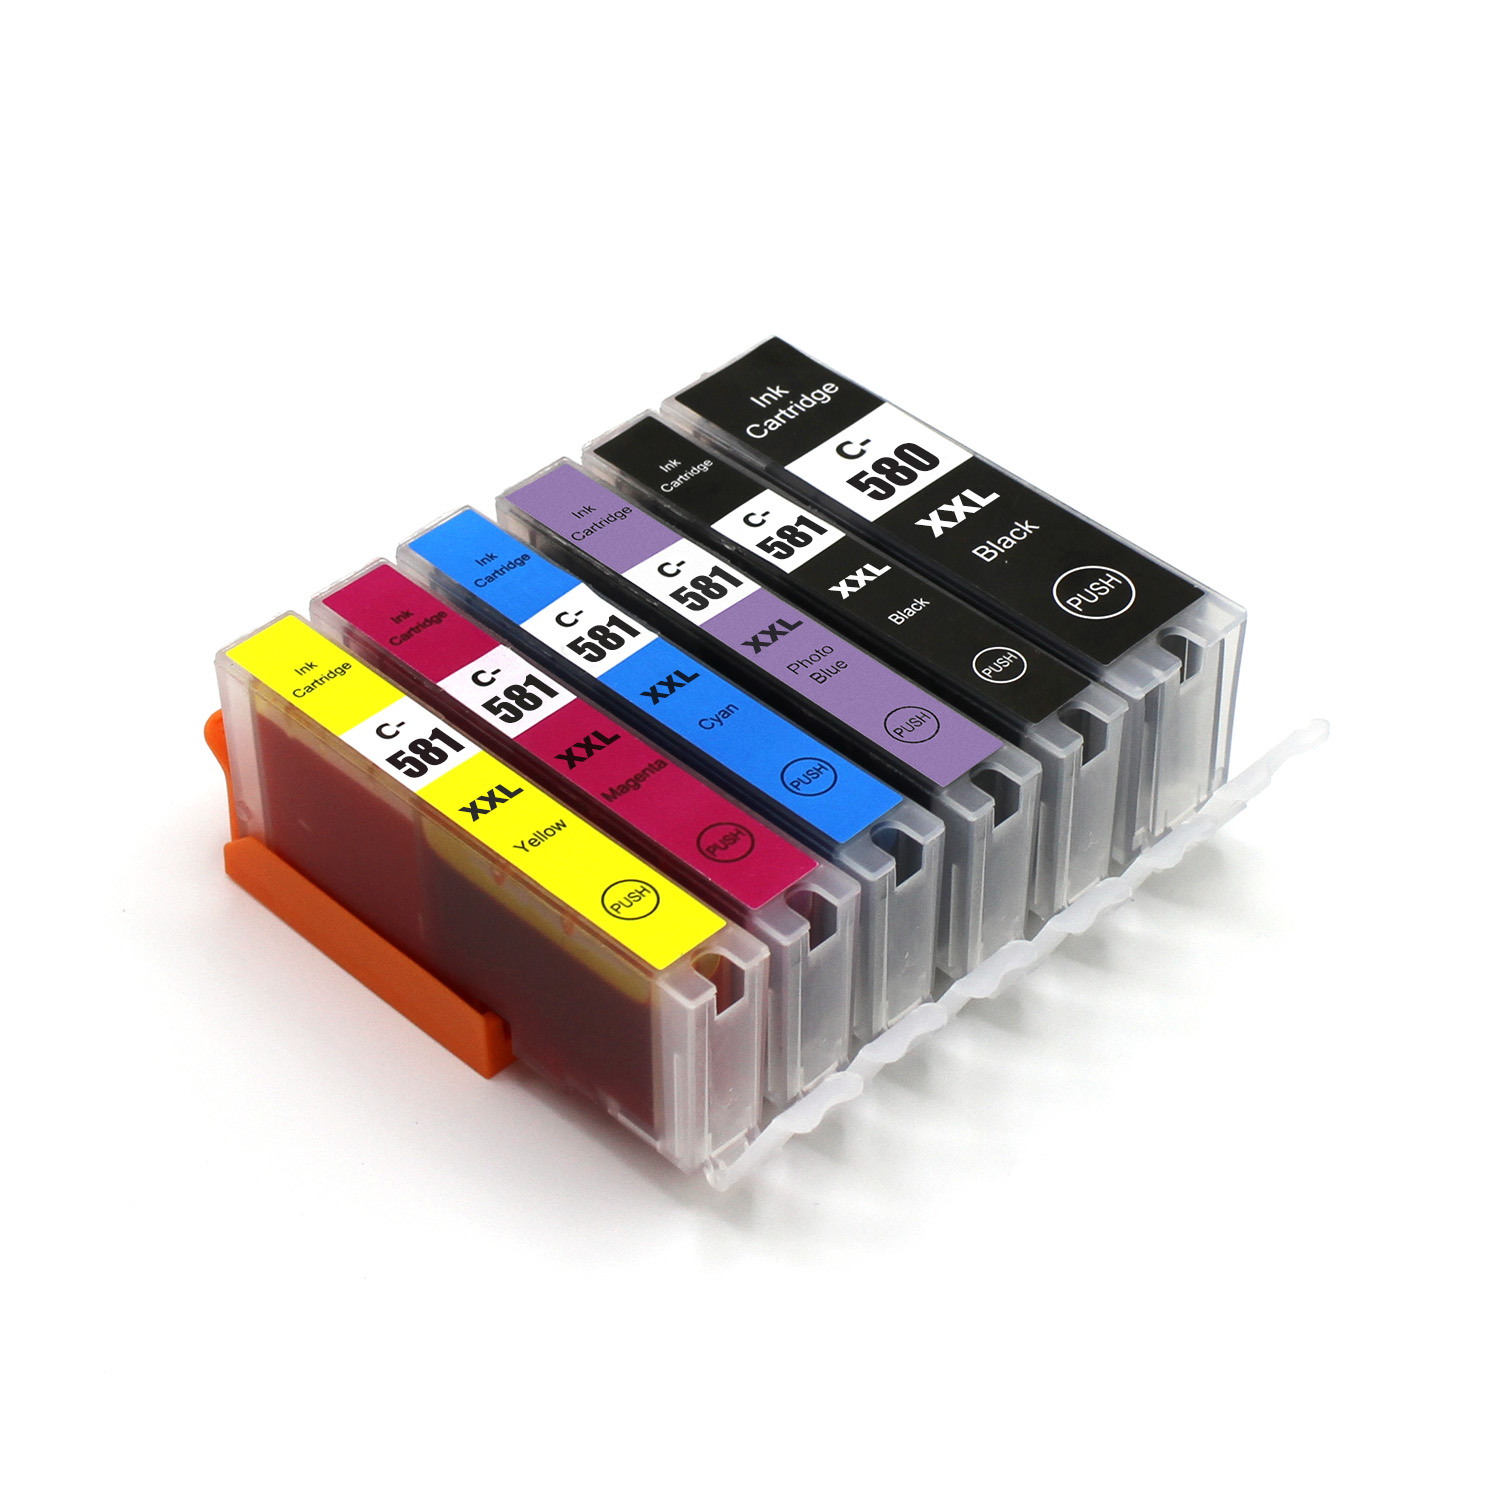 2018 New arrival! refill pgi580 cli581 compatible ink cartridge with auto reset chip